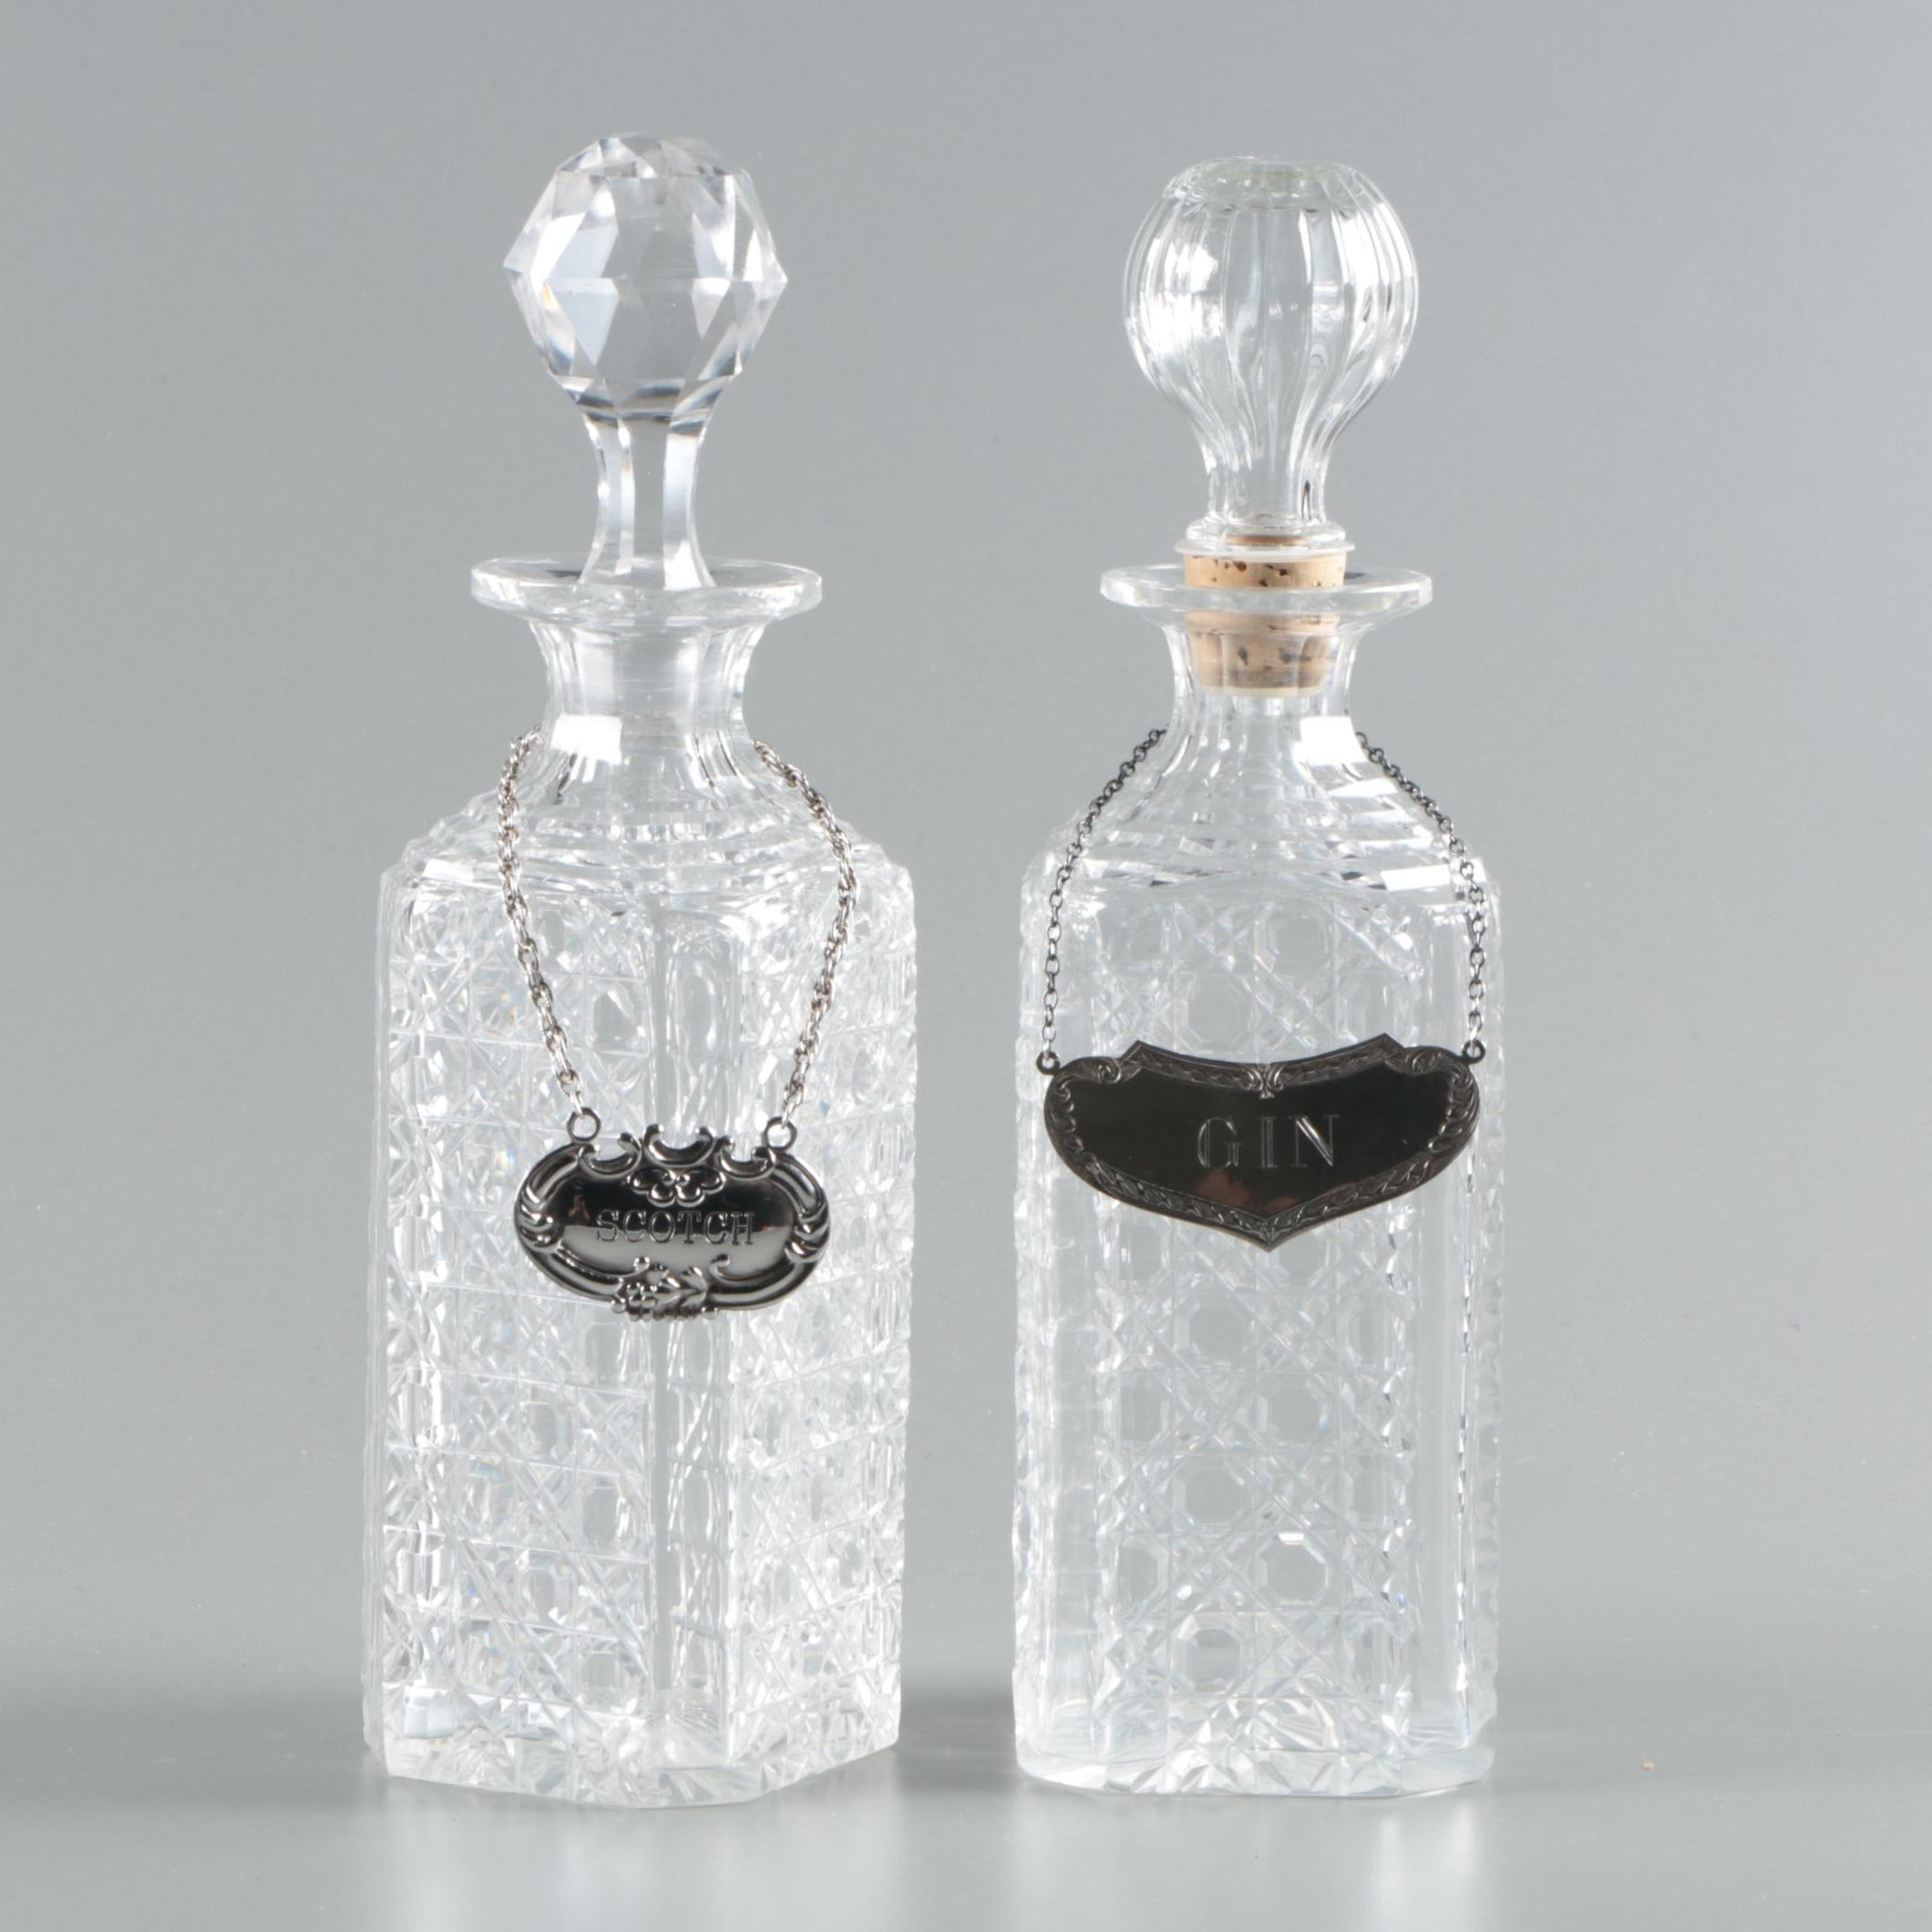 Cane Cut Crystal Decanters with Sterling and Italian 800 Silver Decanter Tags